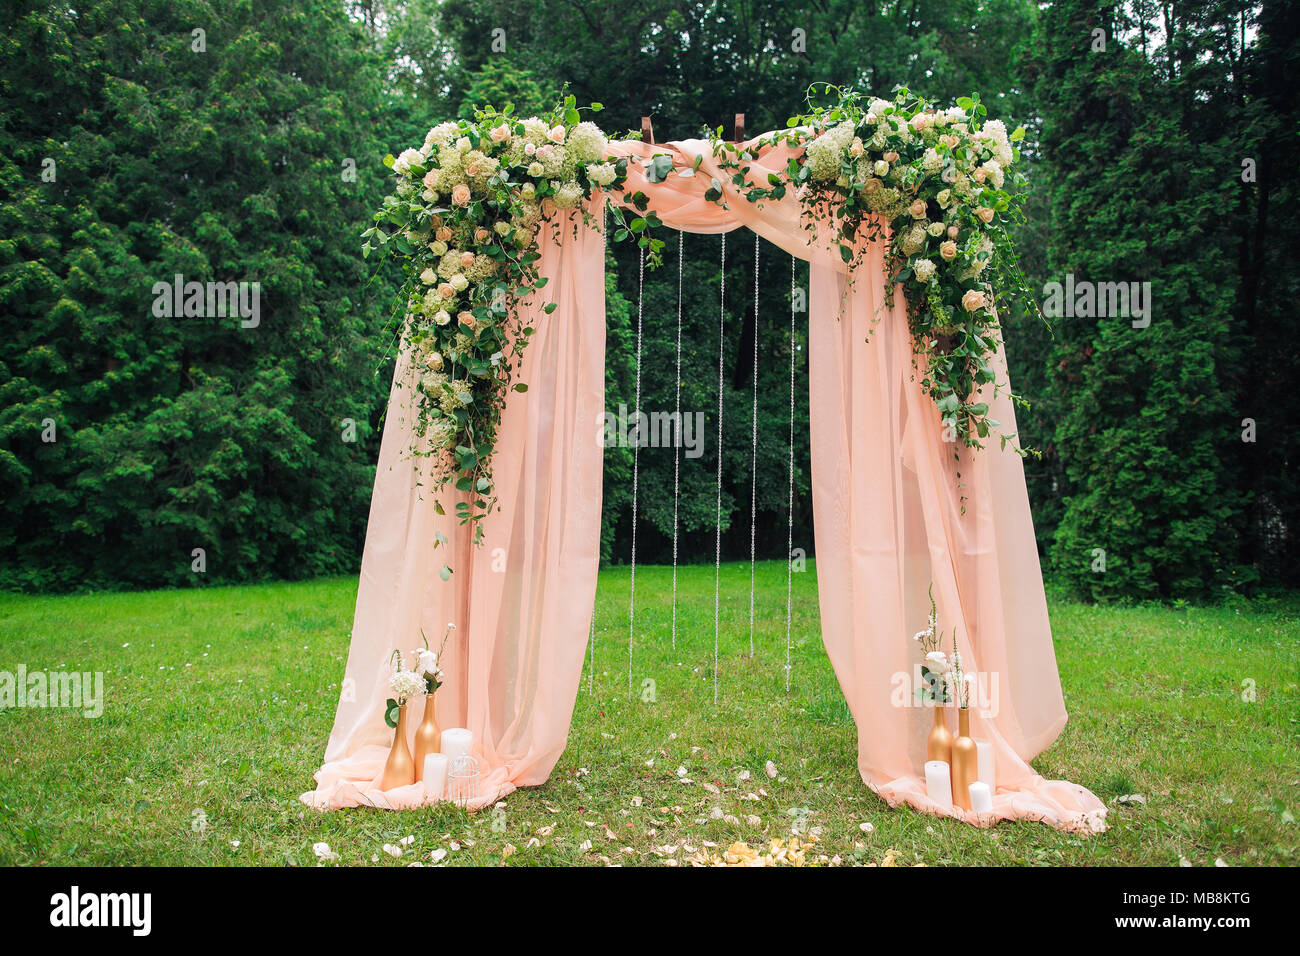 Beautiful place made with wooden square and floral roses decorations for outside wedding ceremony in green park. Wedding settings at scenic place. Hor Stock Photo